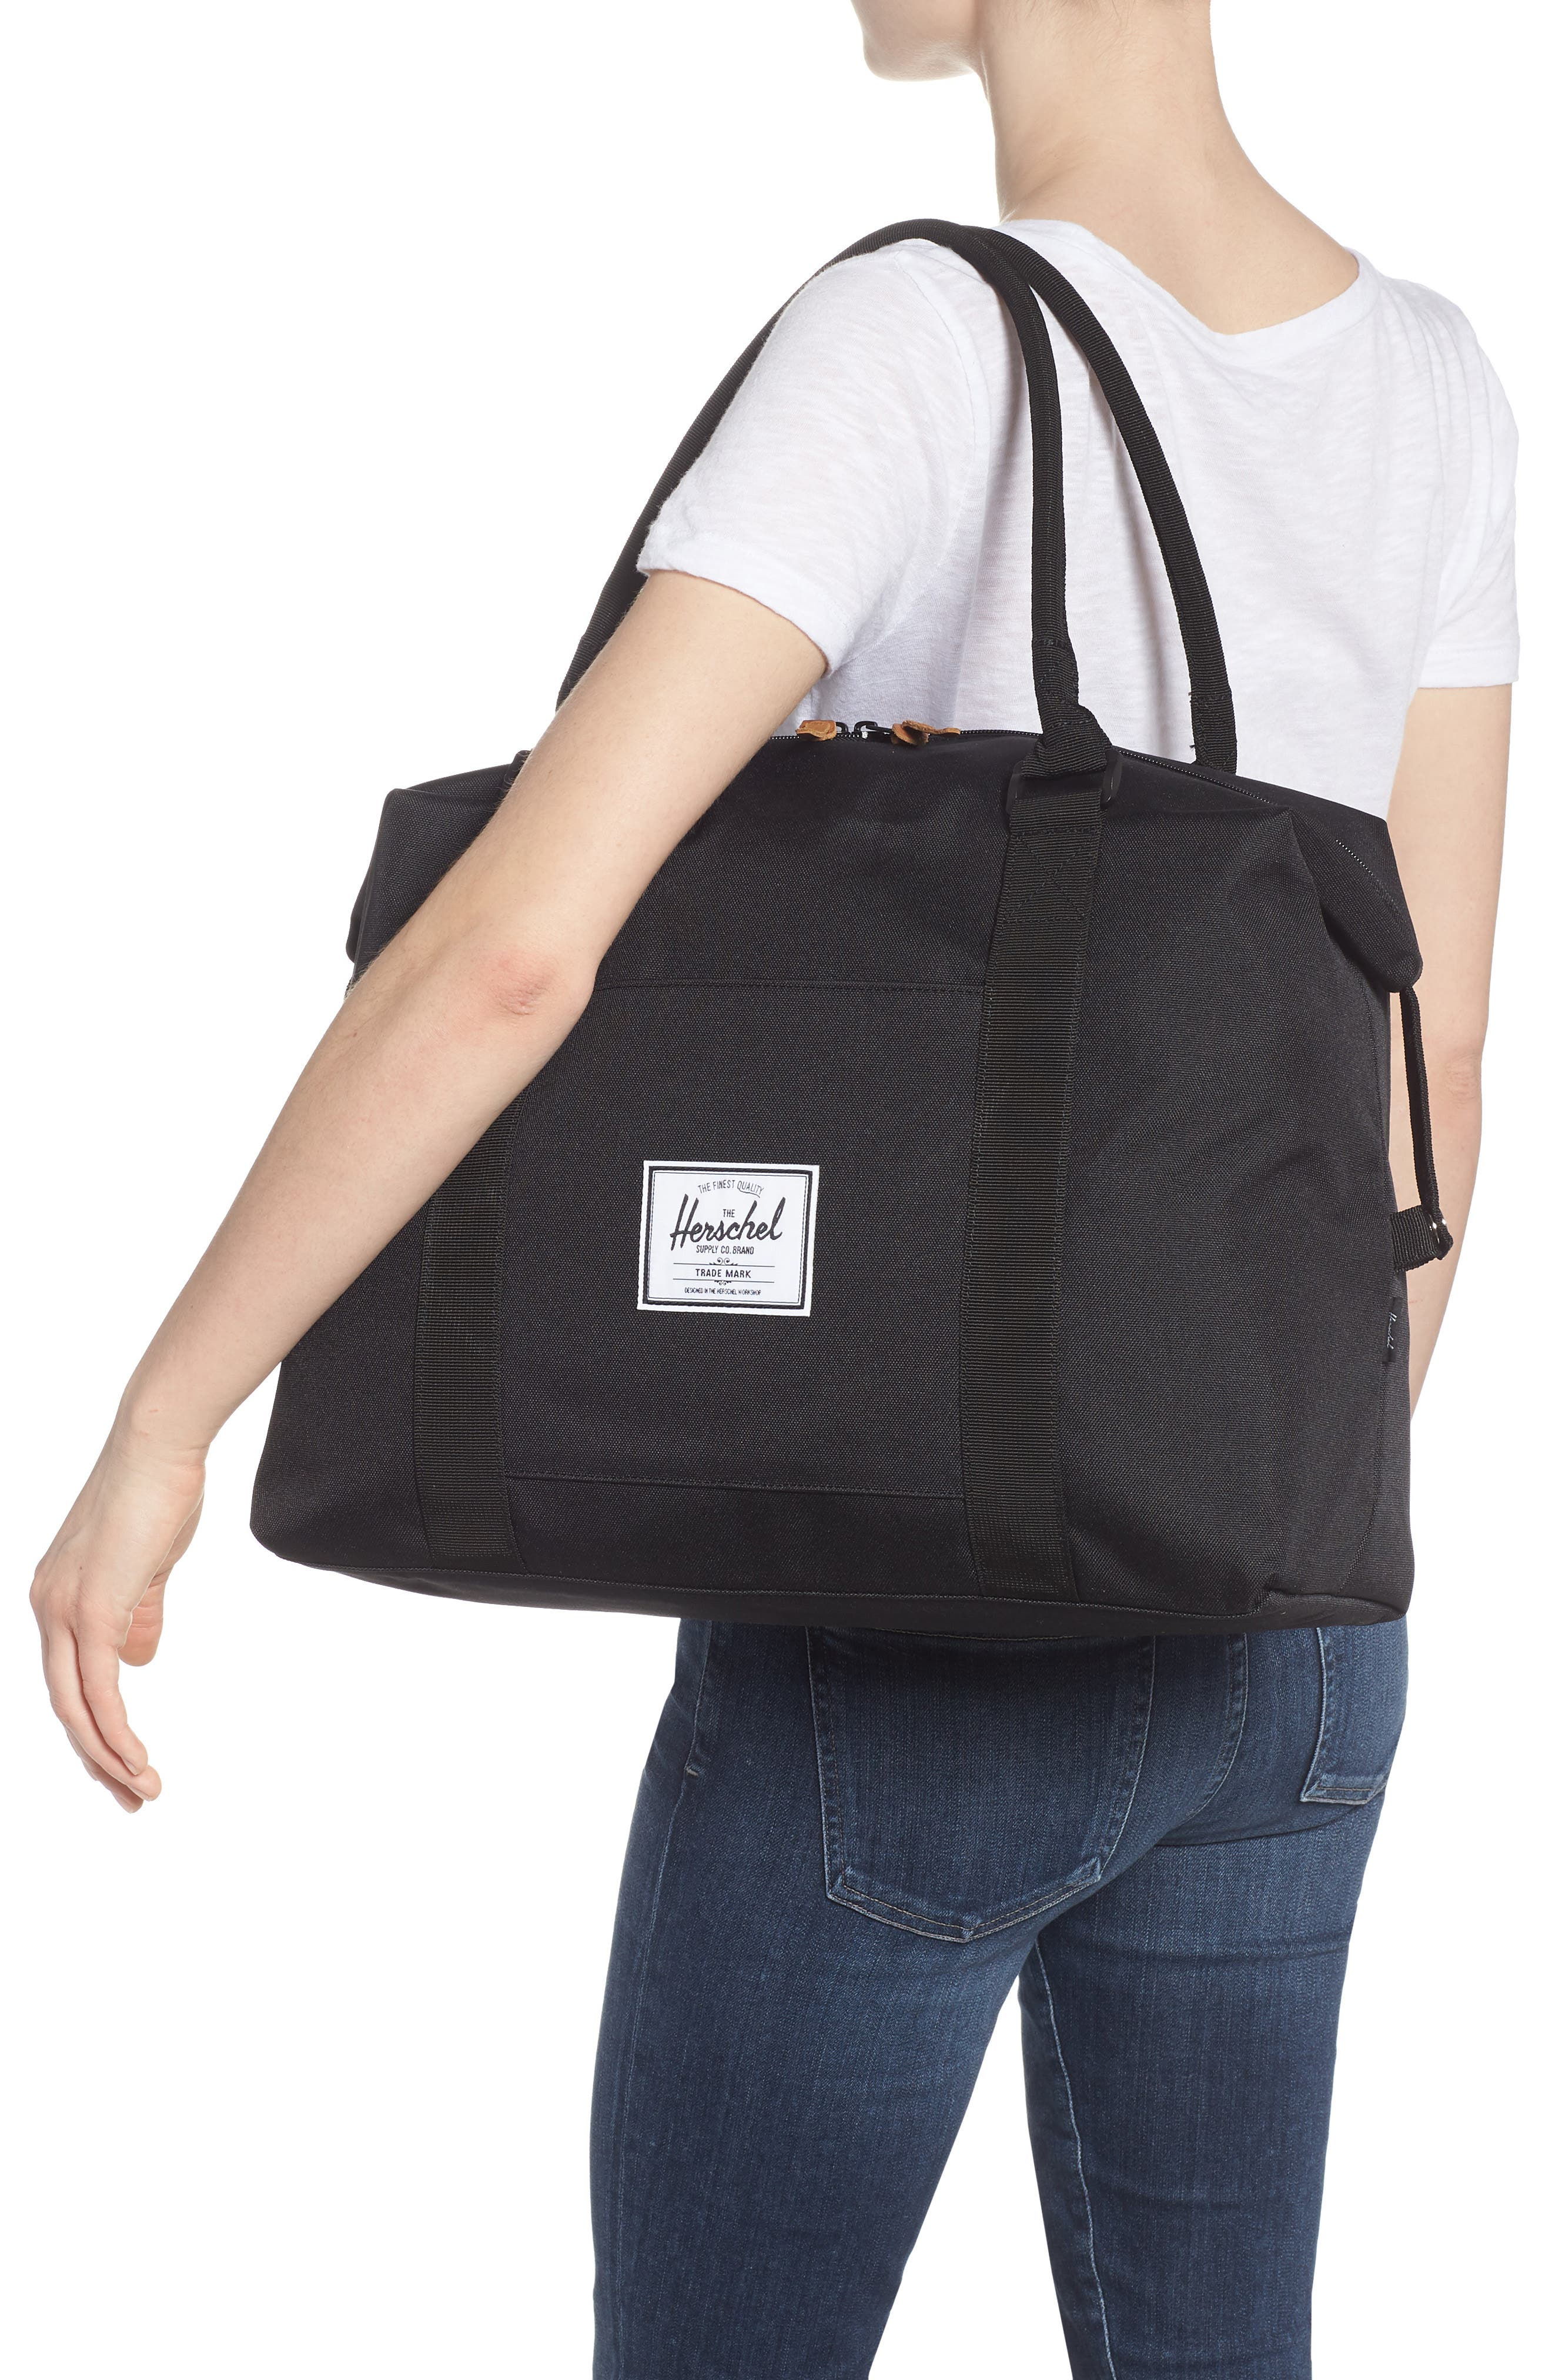 Strand Duffel Bag,                             Alternate thumbnail 2, color,                             001